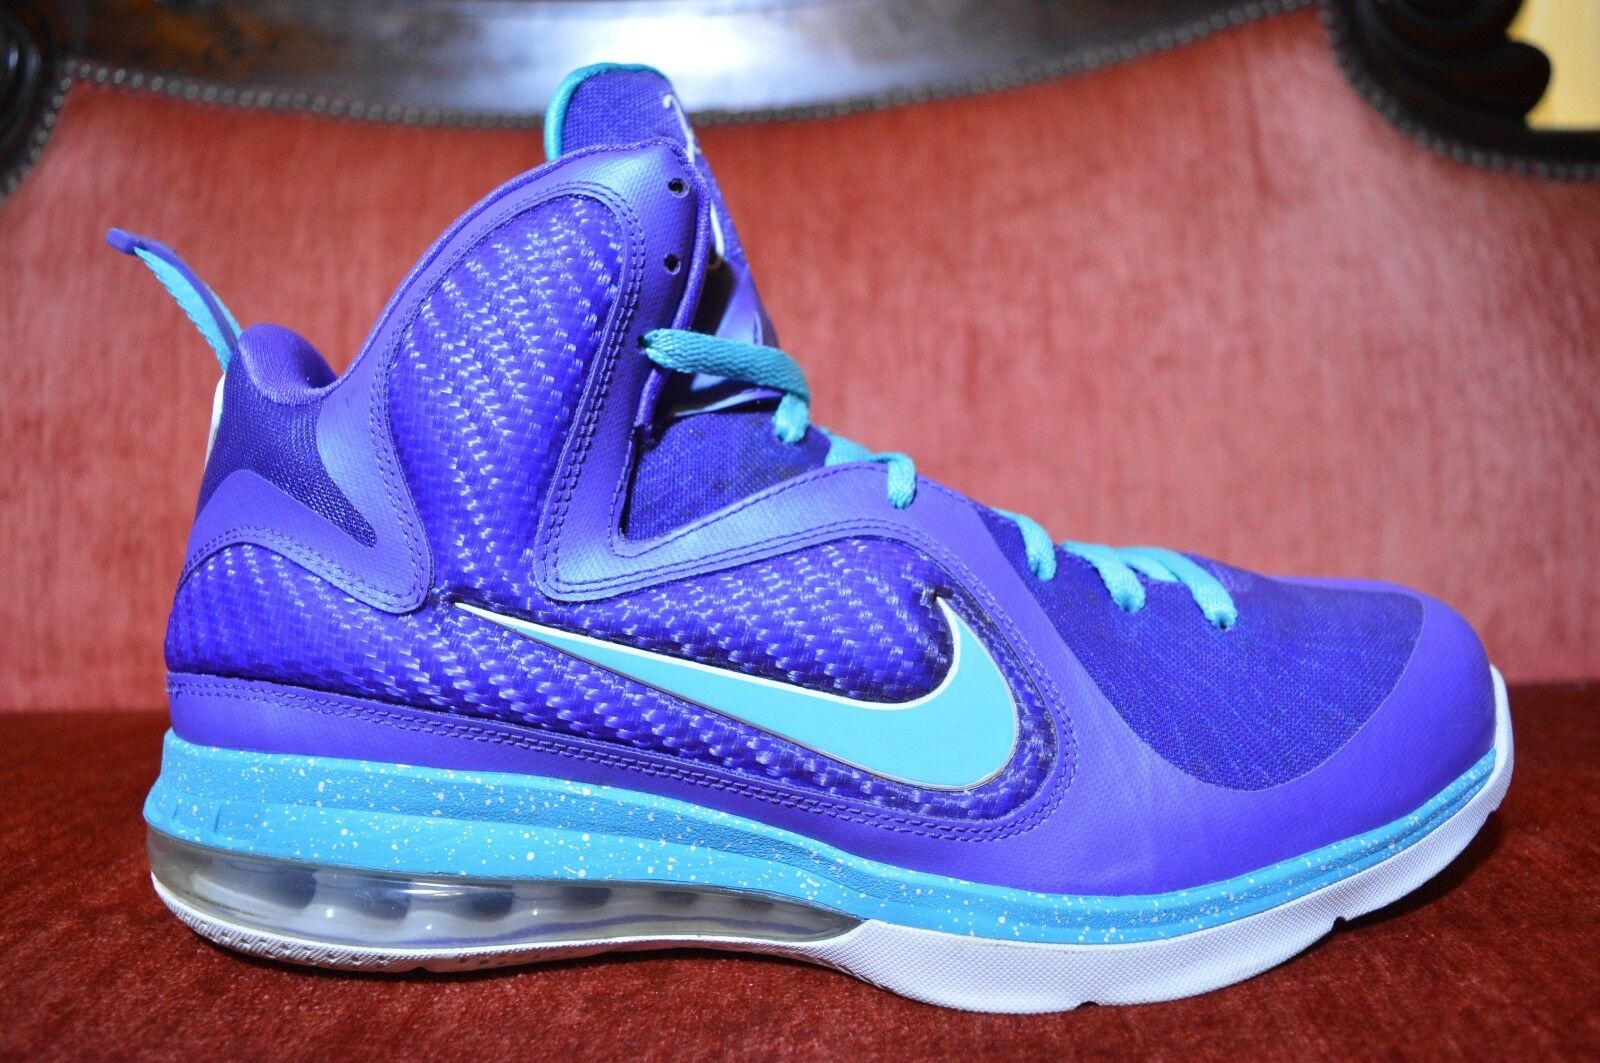 Nike Air Max LEBRON IX 9 SUMMIT LAKE HORNETS PURPLE TURQUOISE BLUE GREEN 12 Comfortable and good-looking